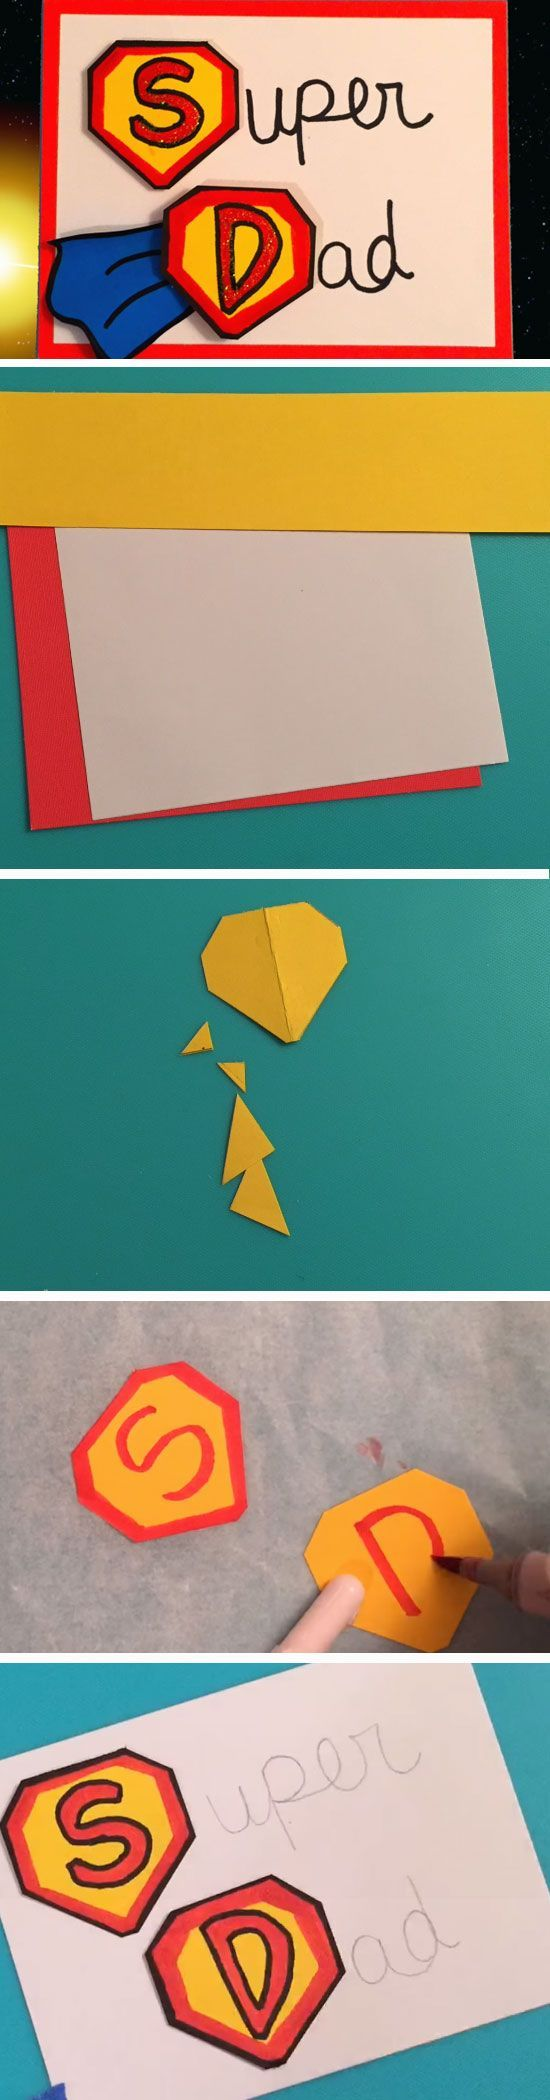 Super Dad Easy Homemade Fathers Day Cards To Make Diy Birthday